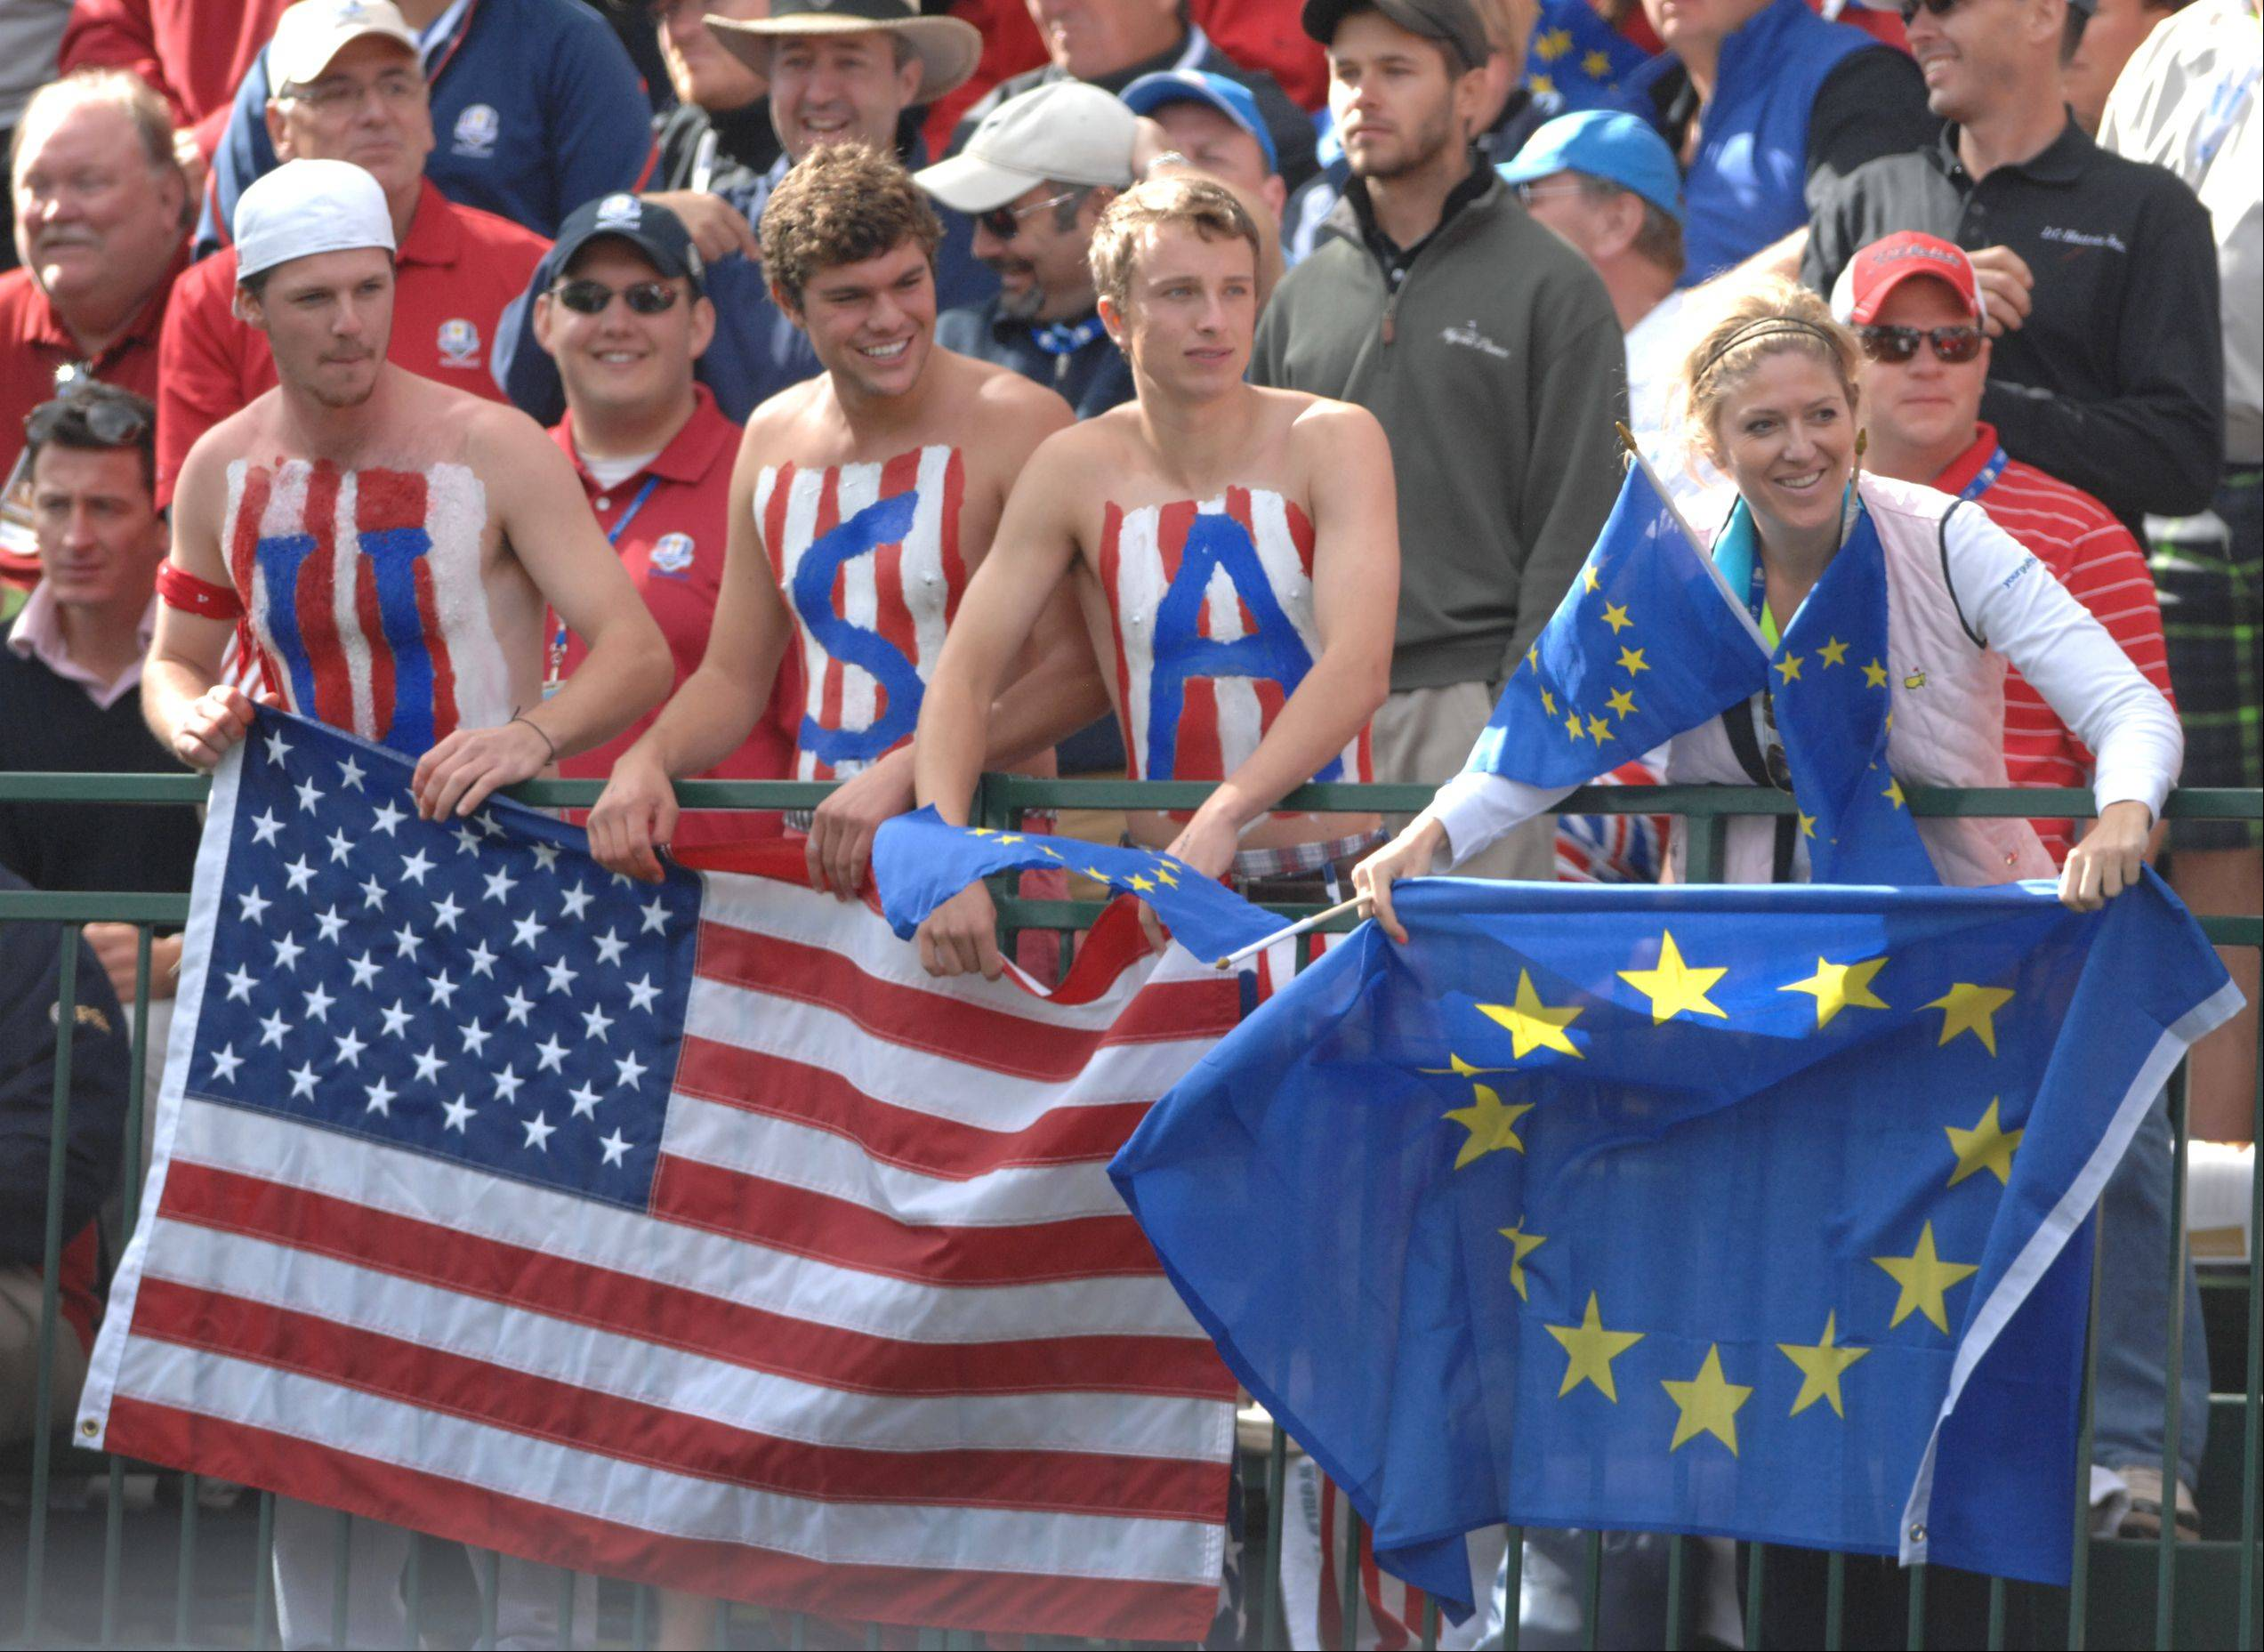 Fans for both the US and European teams were out in force at the first tee Sunday during the final day of the 2012 Ryder Cup at Medinah Country Club.